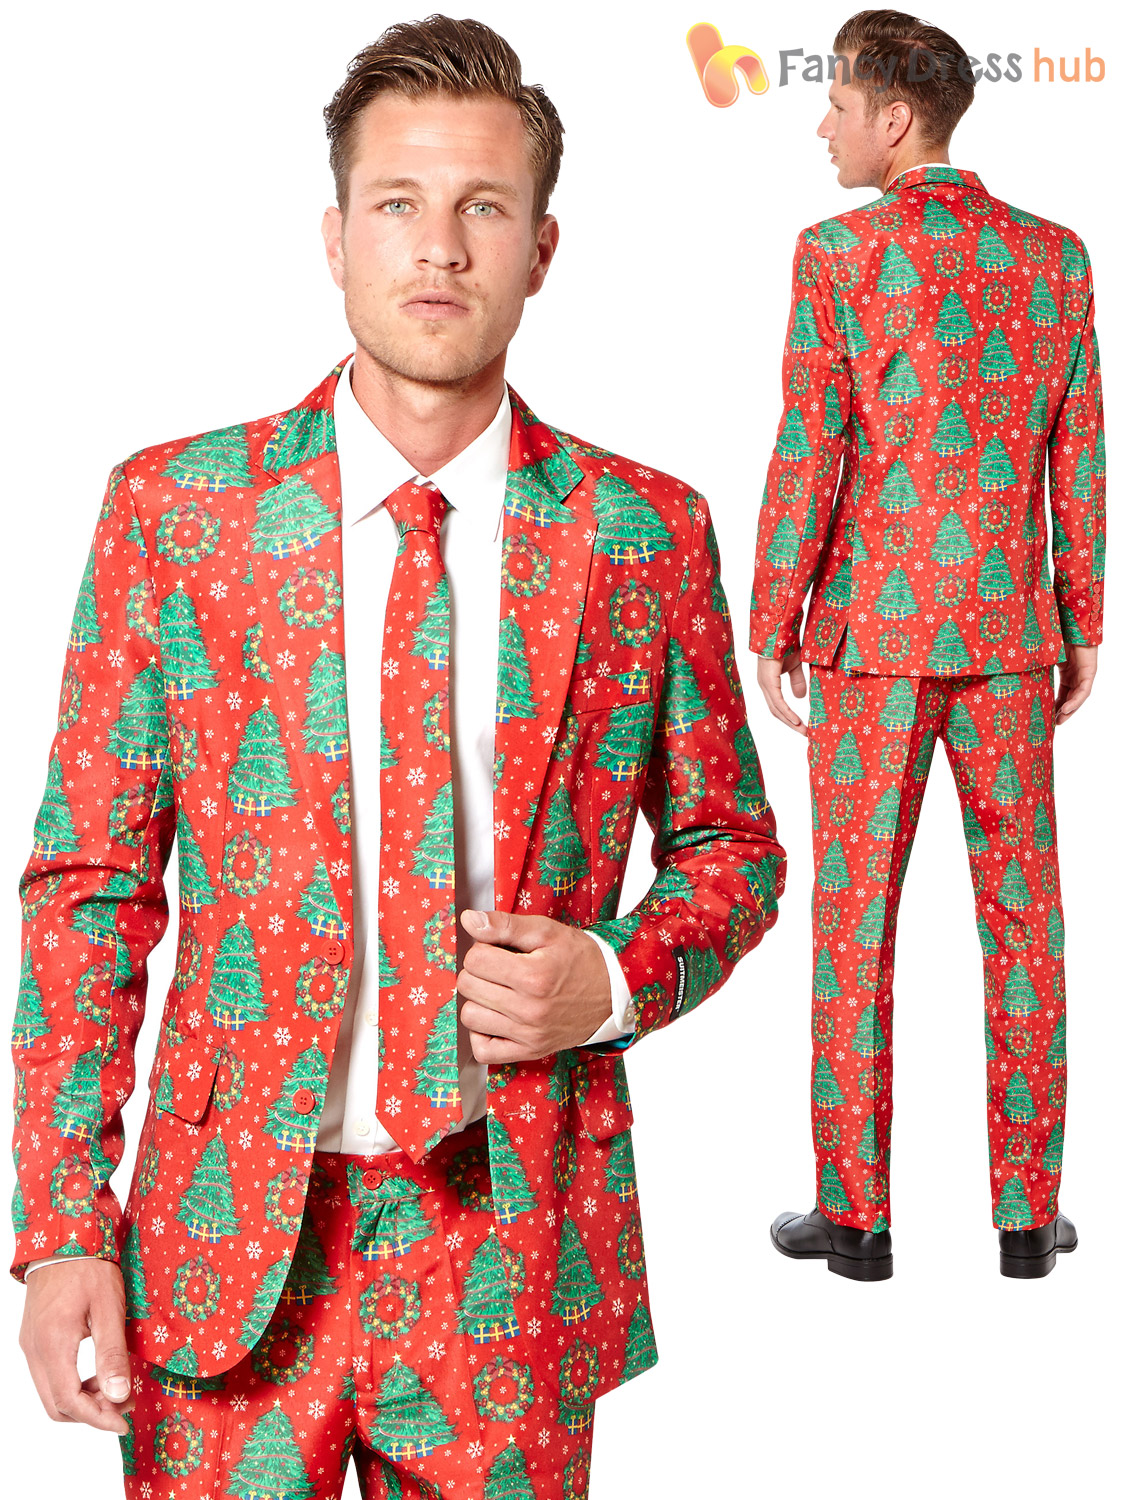 The Perfect Novelty Suits for Stag Dos and Christmas Parties Christmas parties and stag dos normally start with a theme and we have plenty of them in this range of novelty suits. If you're looking for an attention grabbing office party suit, we have plenty in our collection for you to choose from.